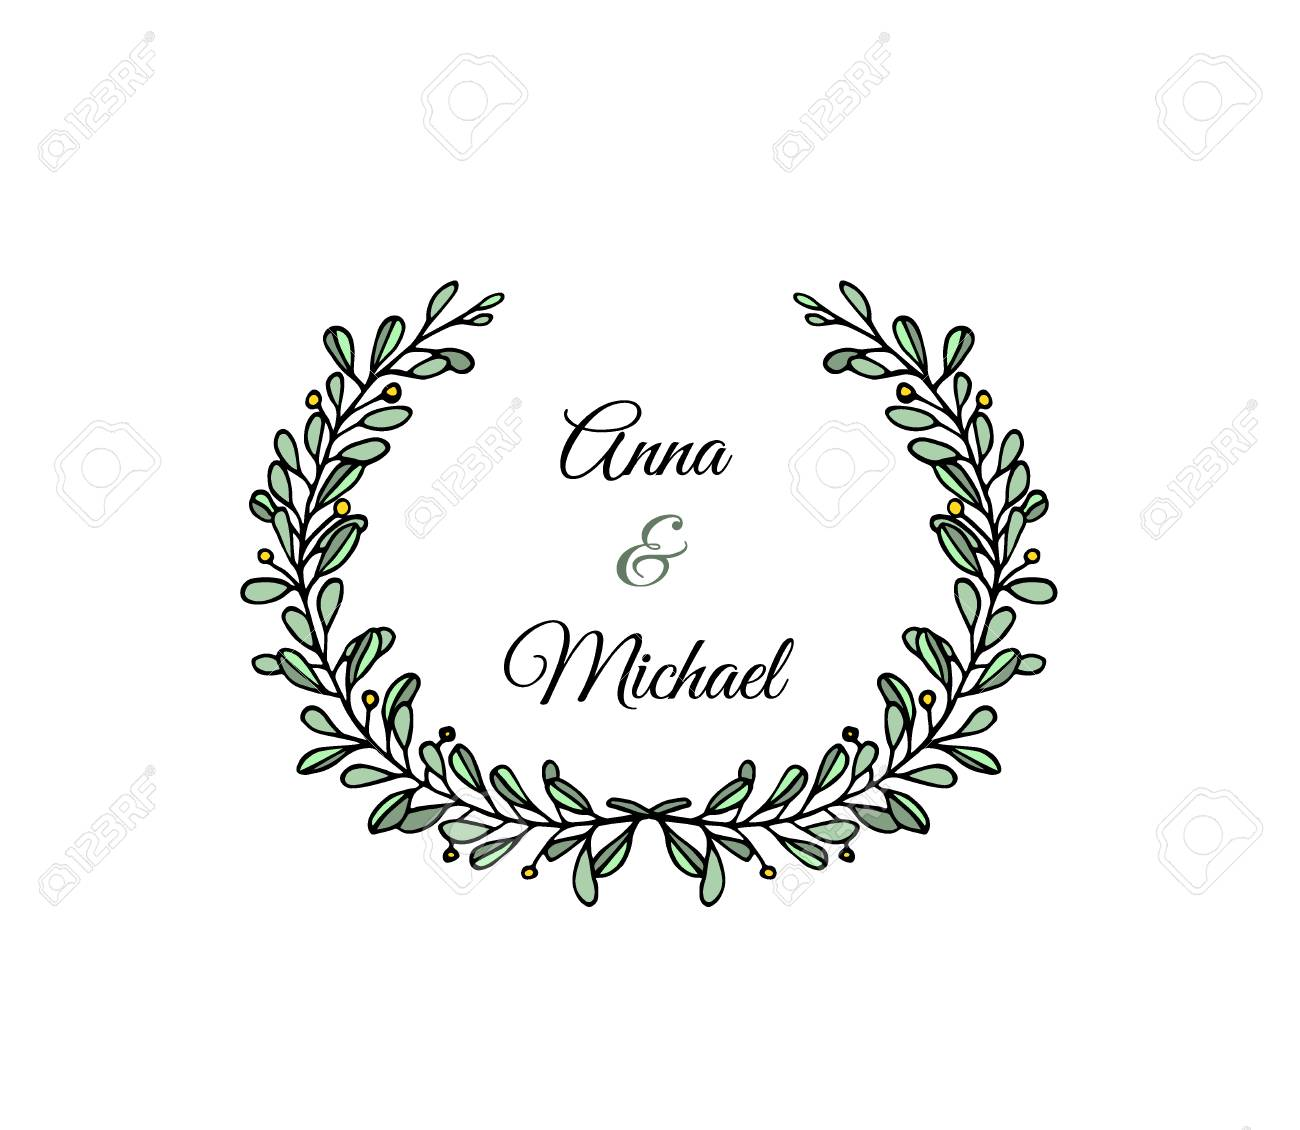 Beautiful Wedding Announcements.Illustration Of Hand Drawn Floral Wreath Beautiful Floral Design